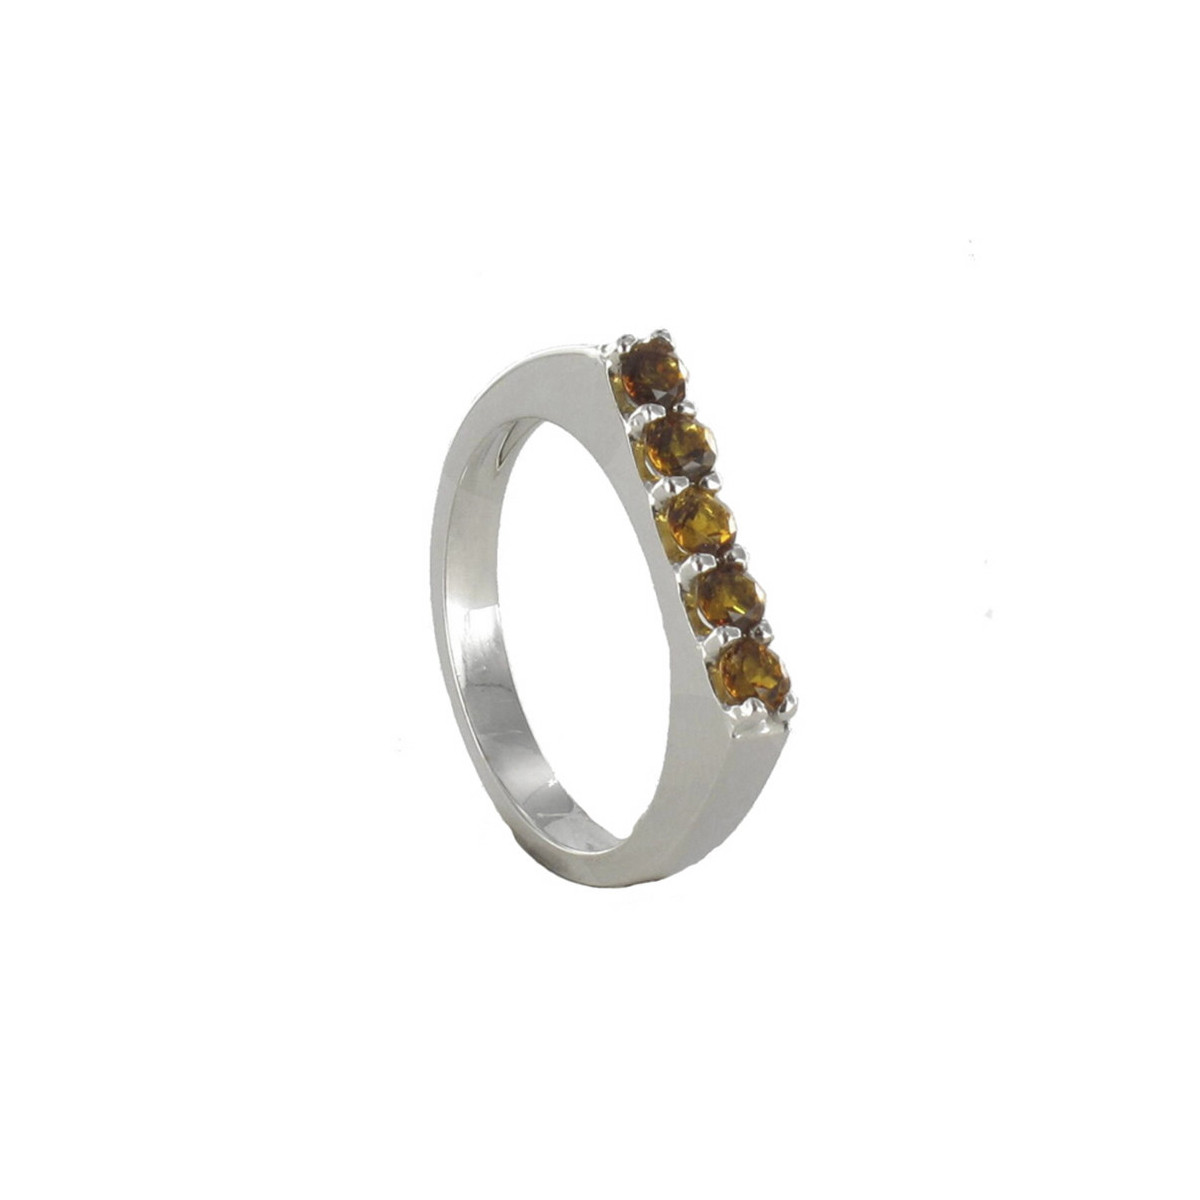 WHITE GOLD RING WITH 5 CITRINES